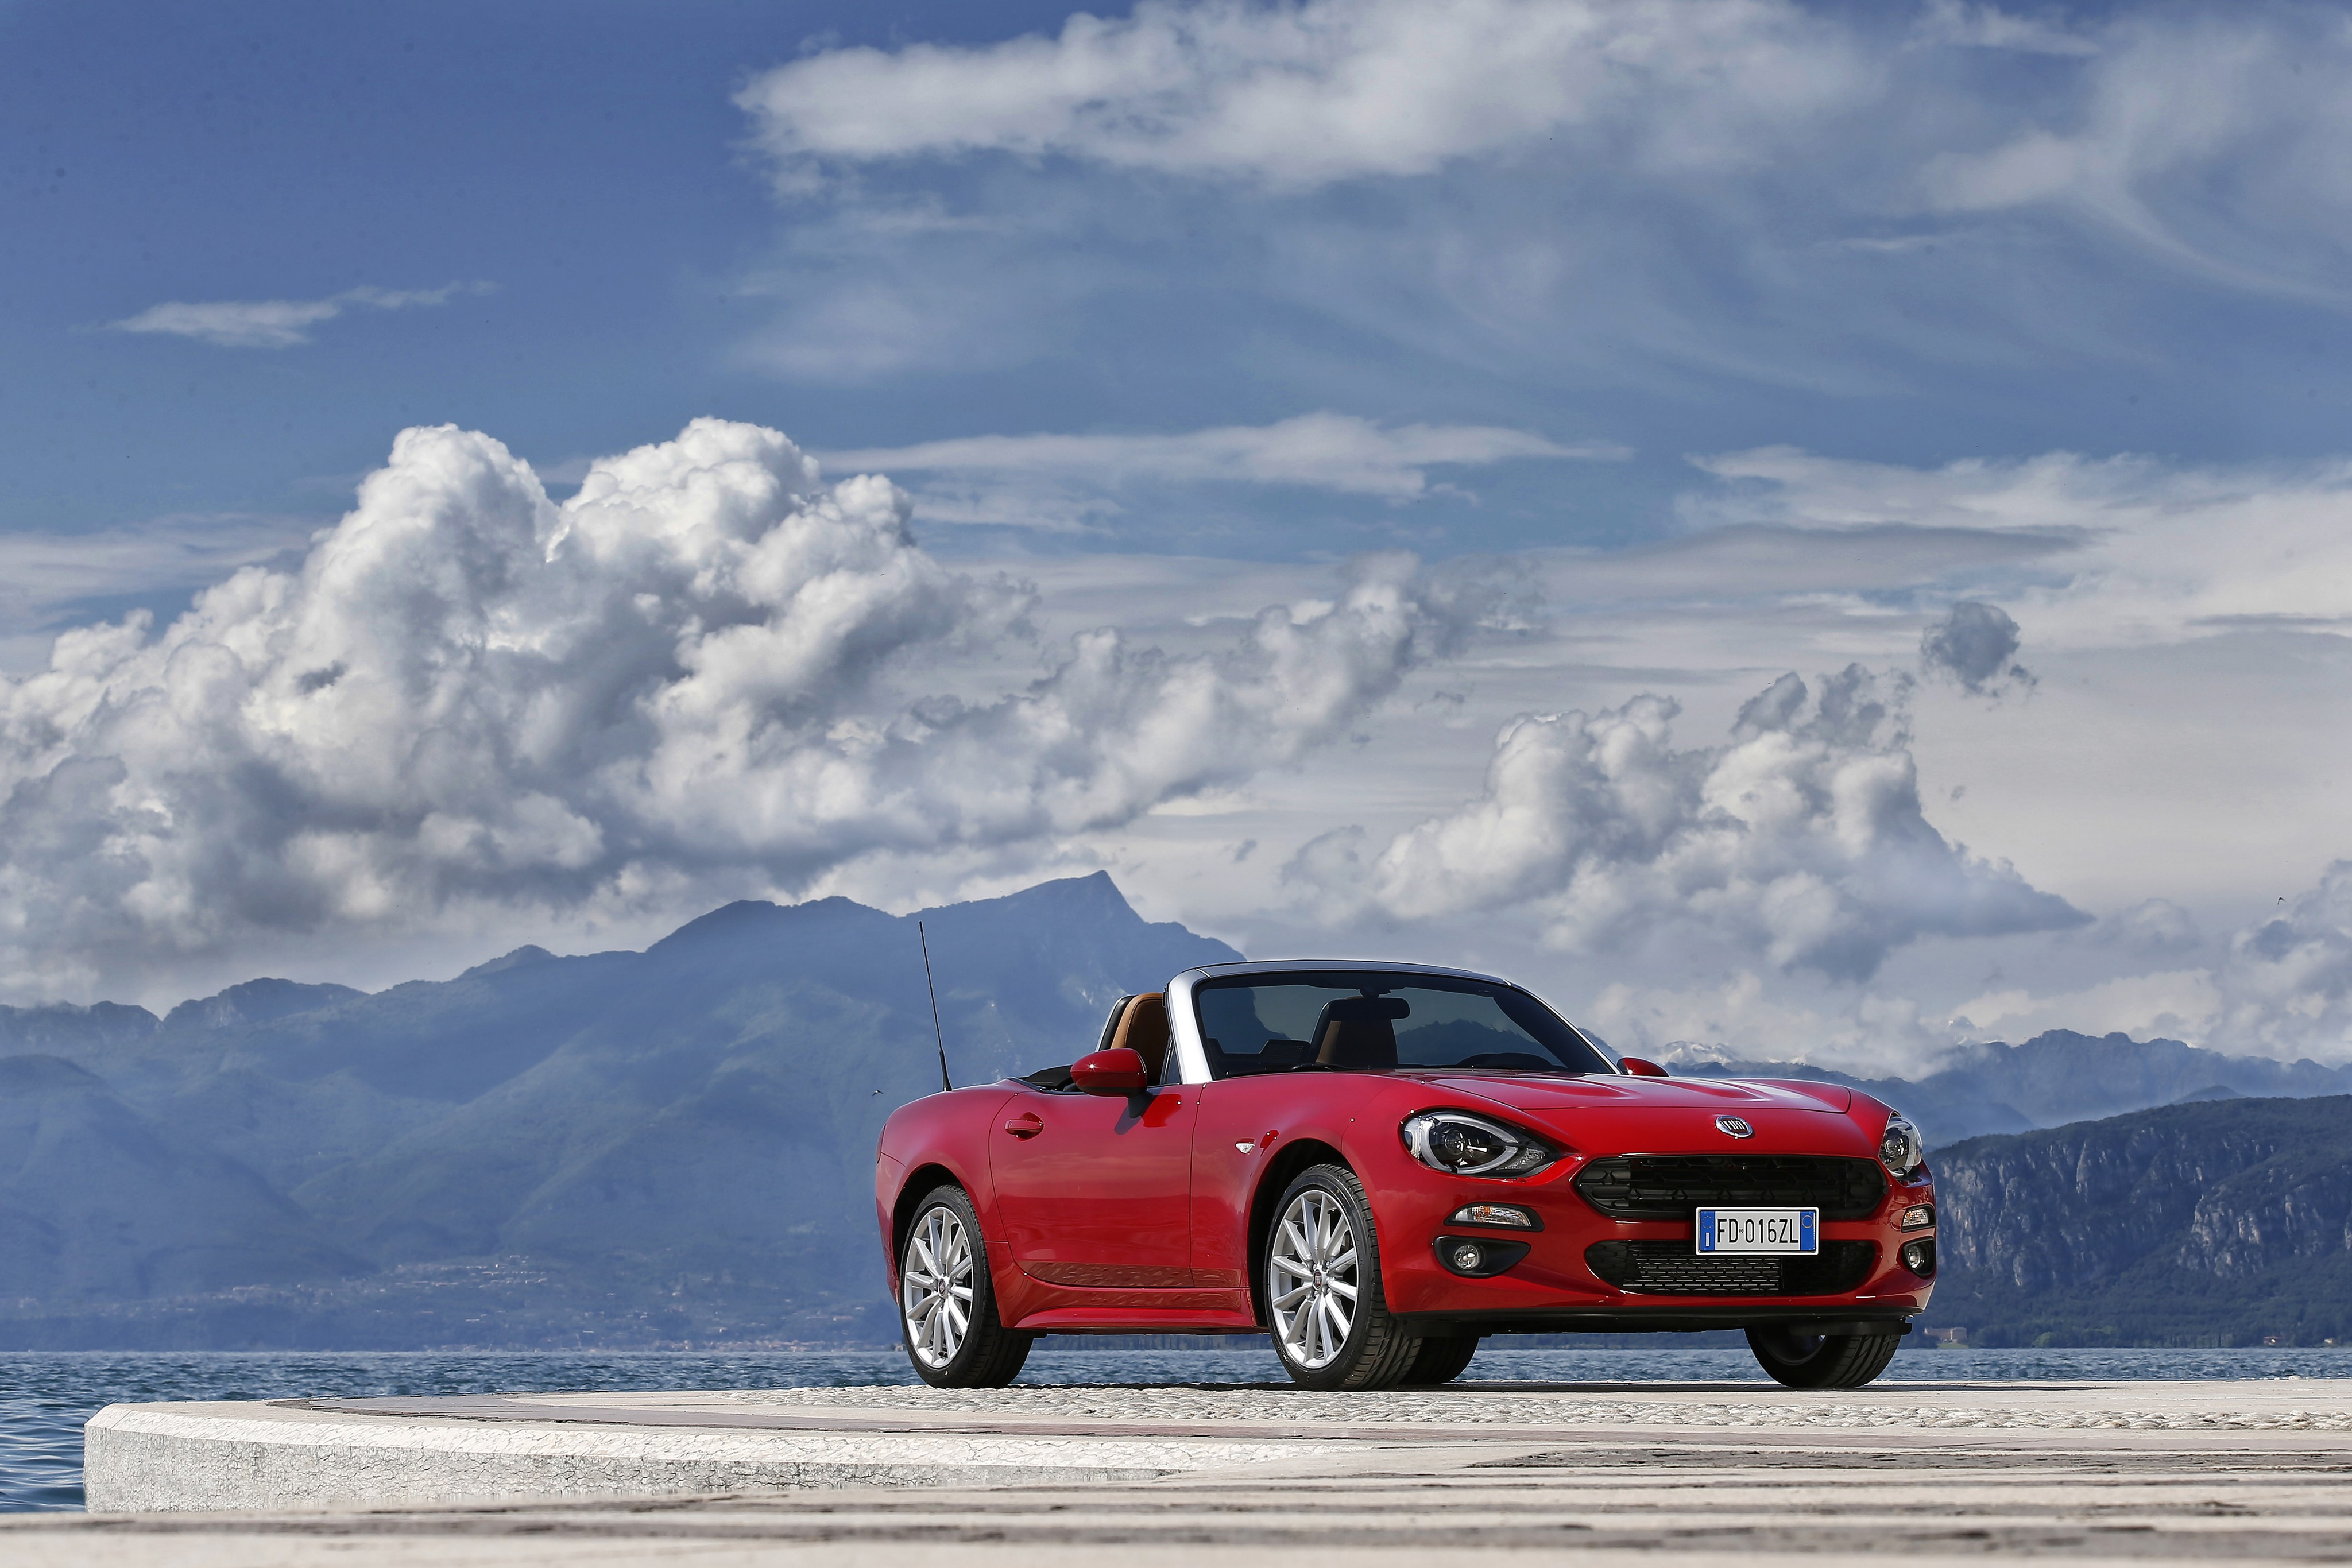 Wallpaper Fiat 124 Spider Roadster Red Snow Clouds